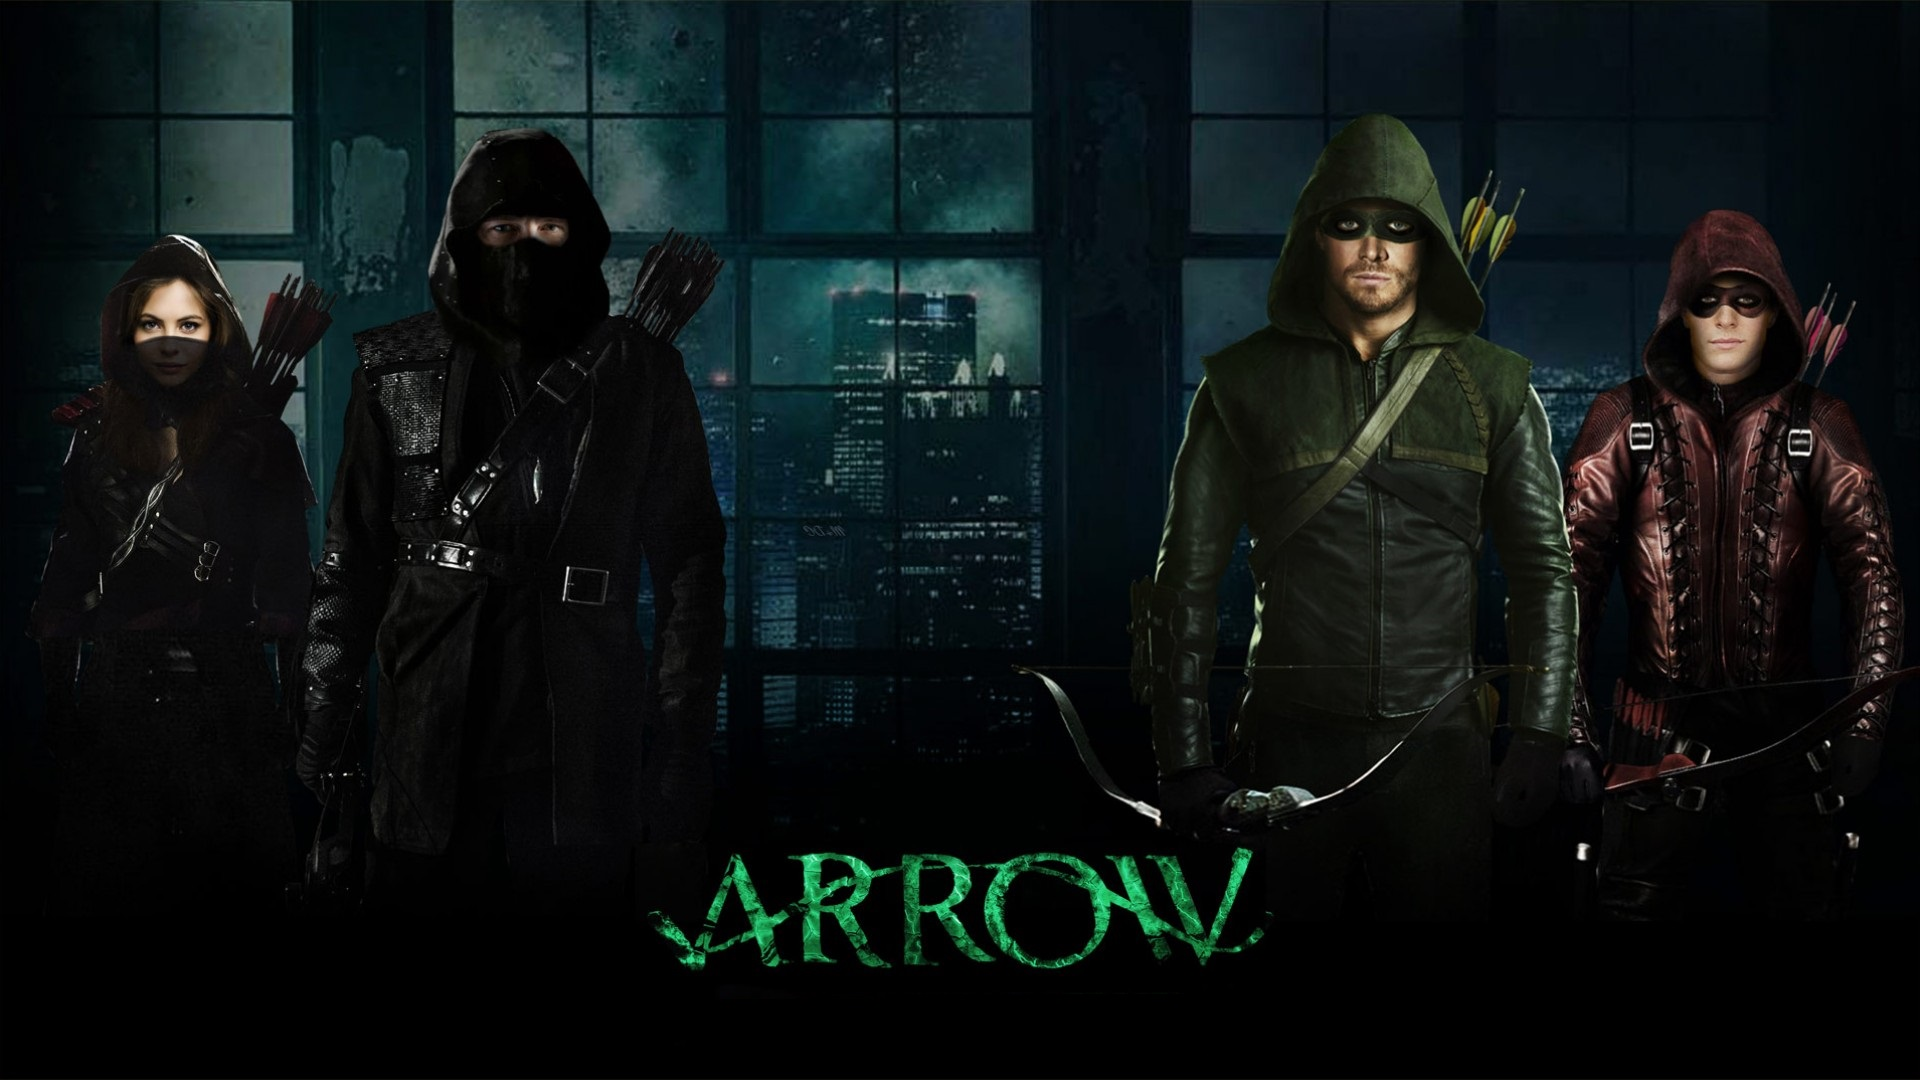 Arrow 6x19 - The Dragon